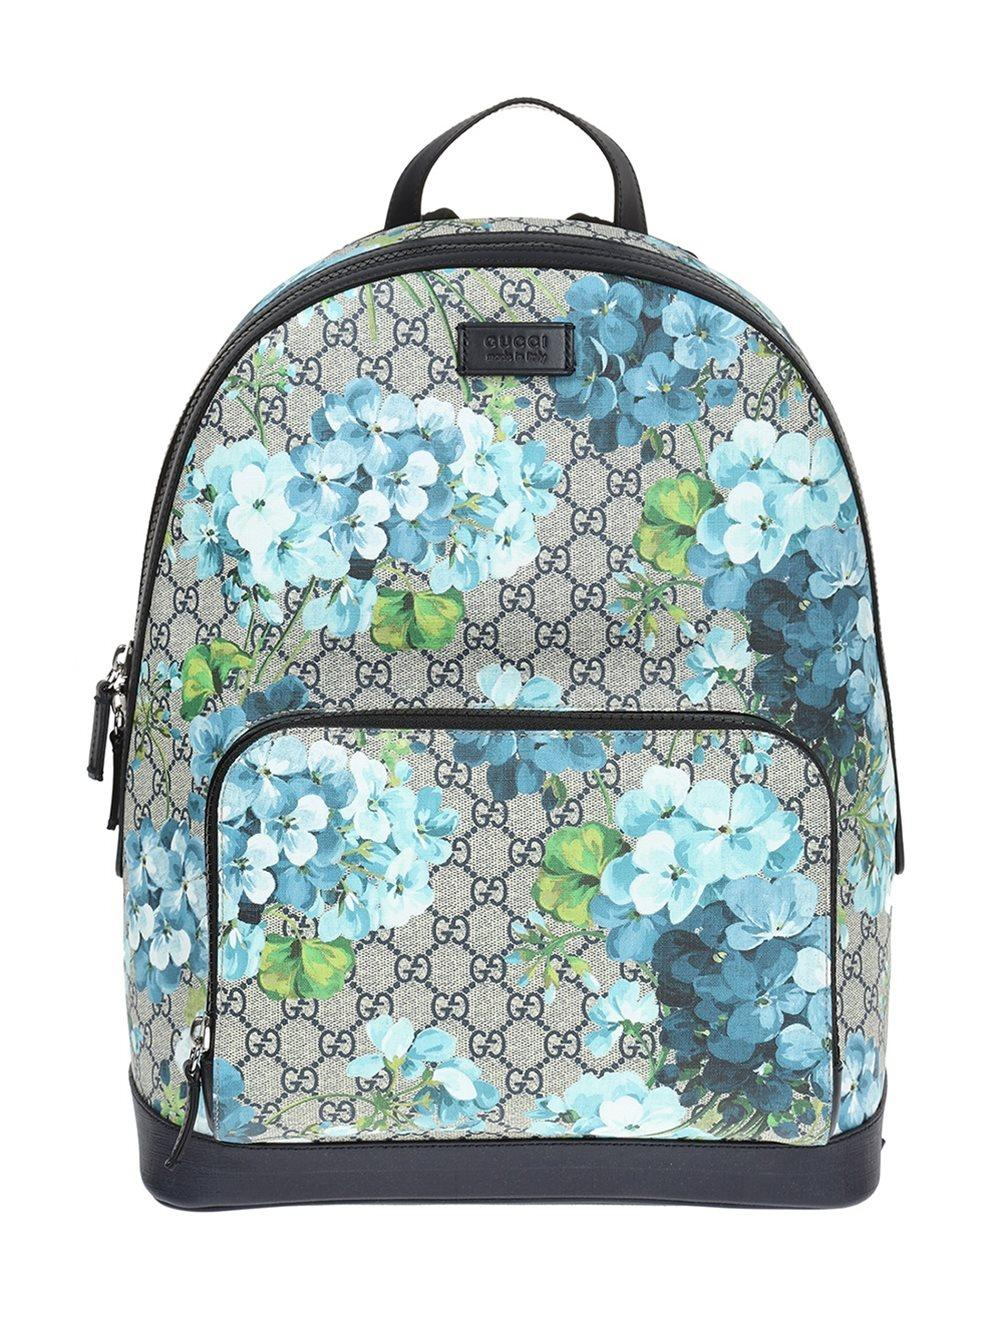 93490d3ef Gucci Gg Blooms Backpack - Lyst